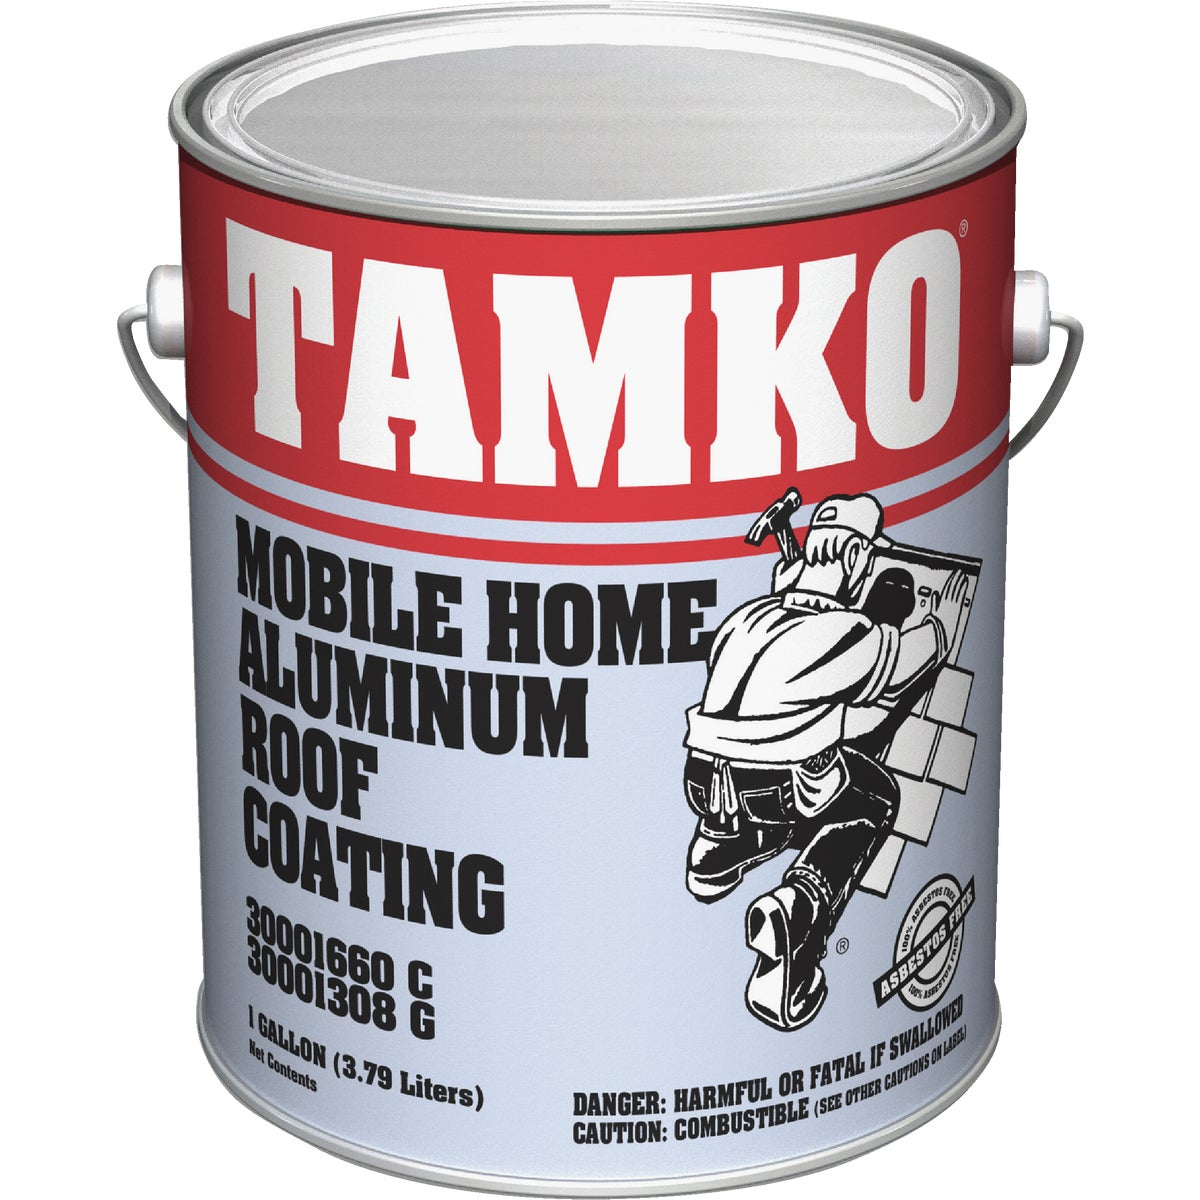 GAL MBL/HM ROOF COATING - 30001660 by Tamko Bldg Prod Inc